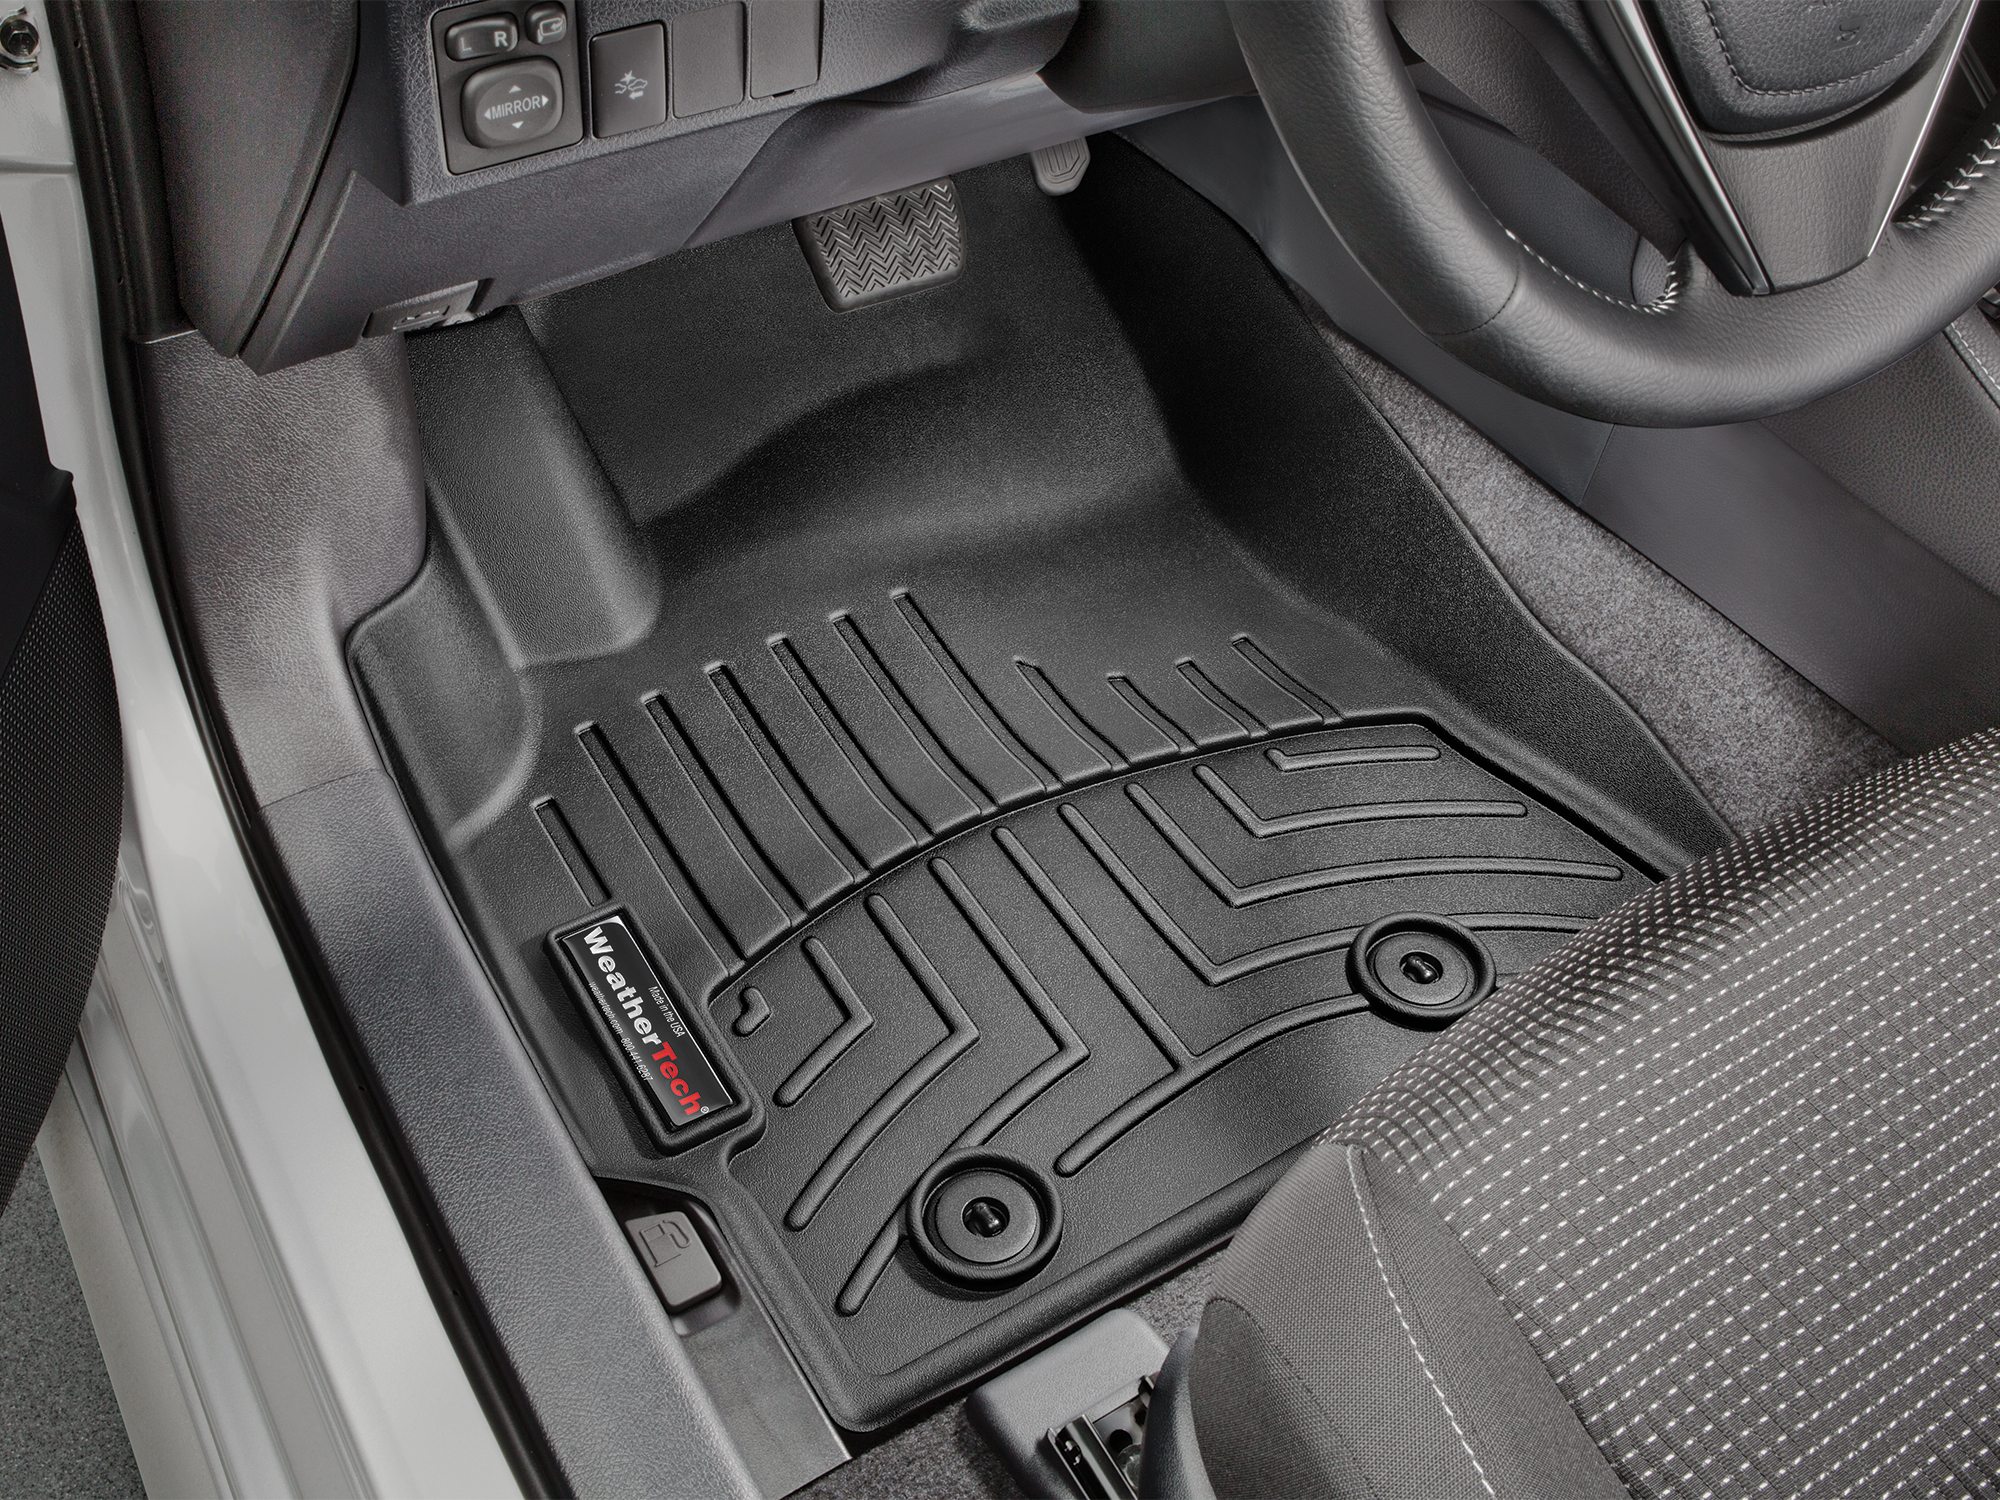 TOYO_Corolla_IM_18_448661 Cool Review About 2006 toyota Corolla Floor Mats with Mesmerizing Pictures Cars Review